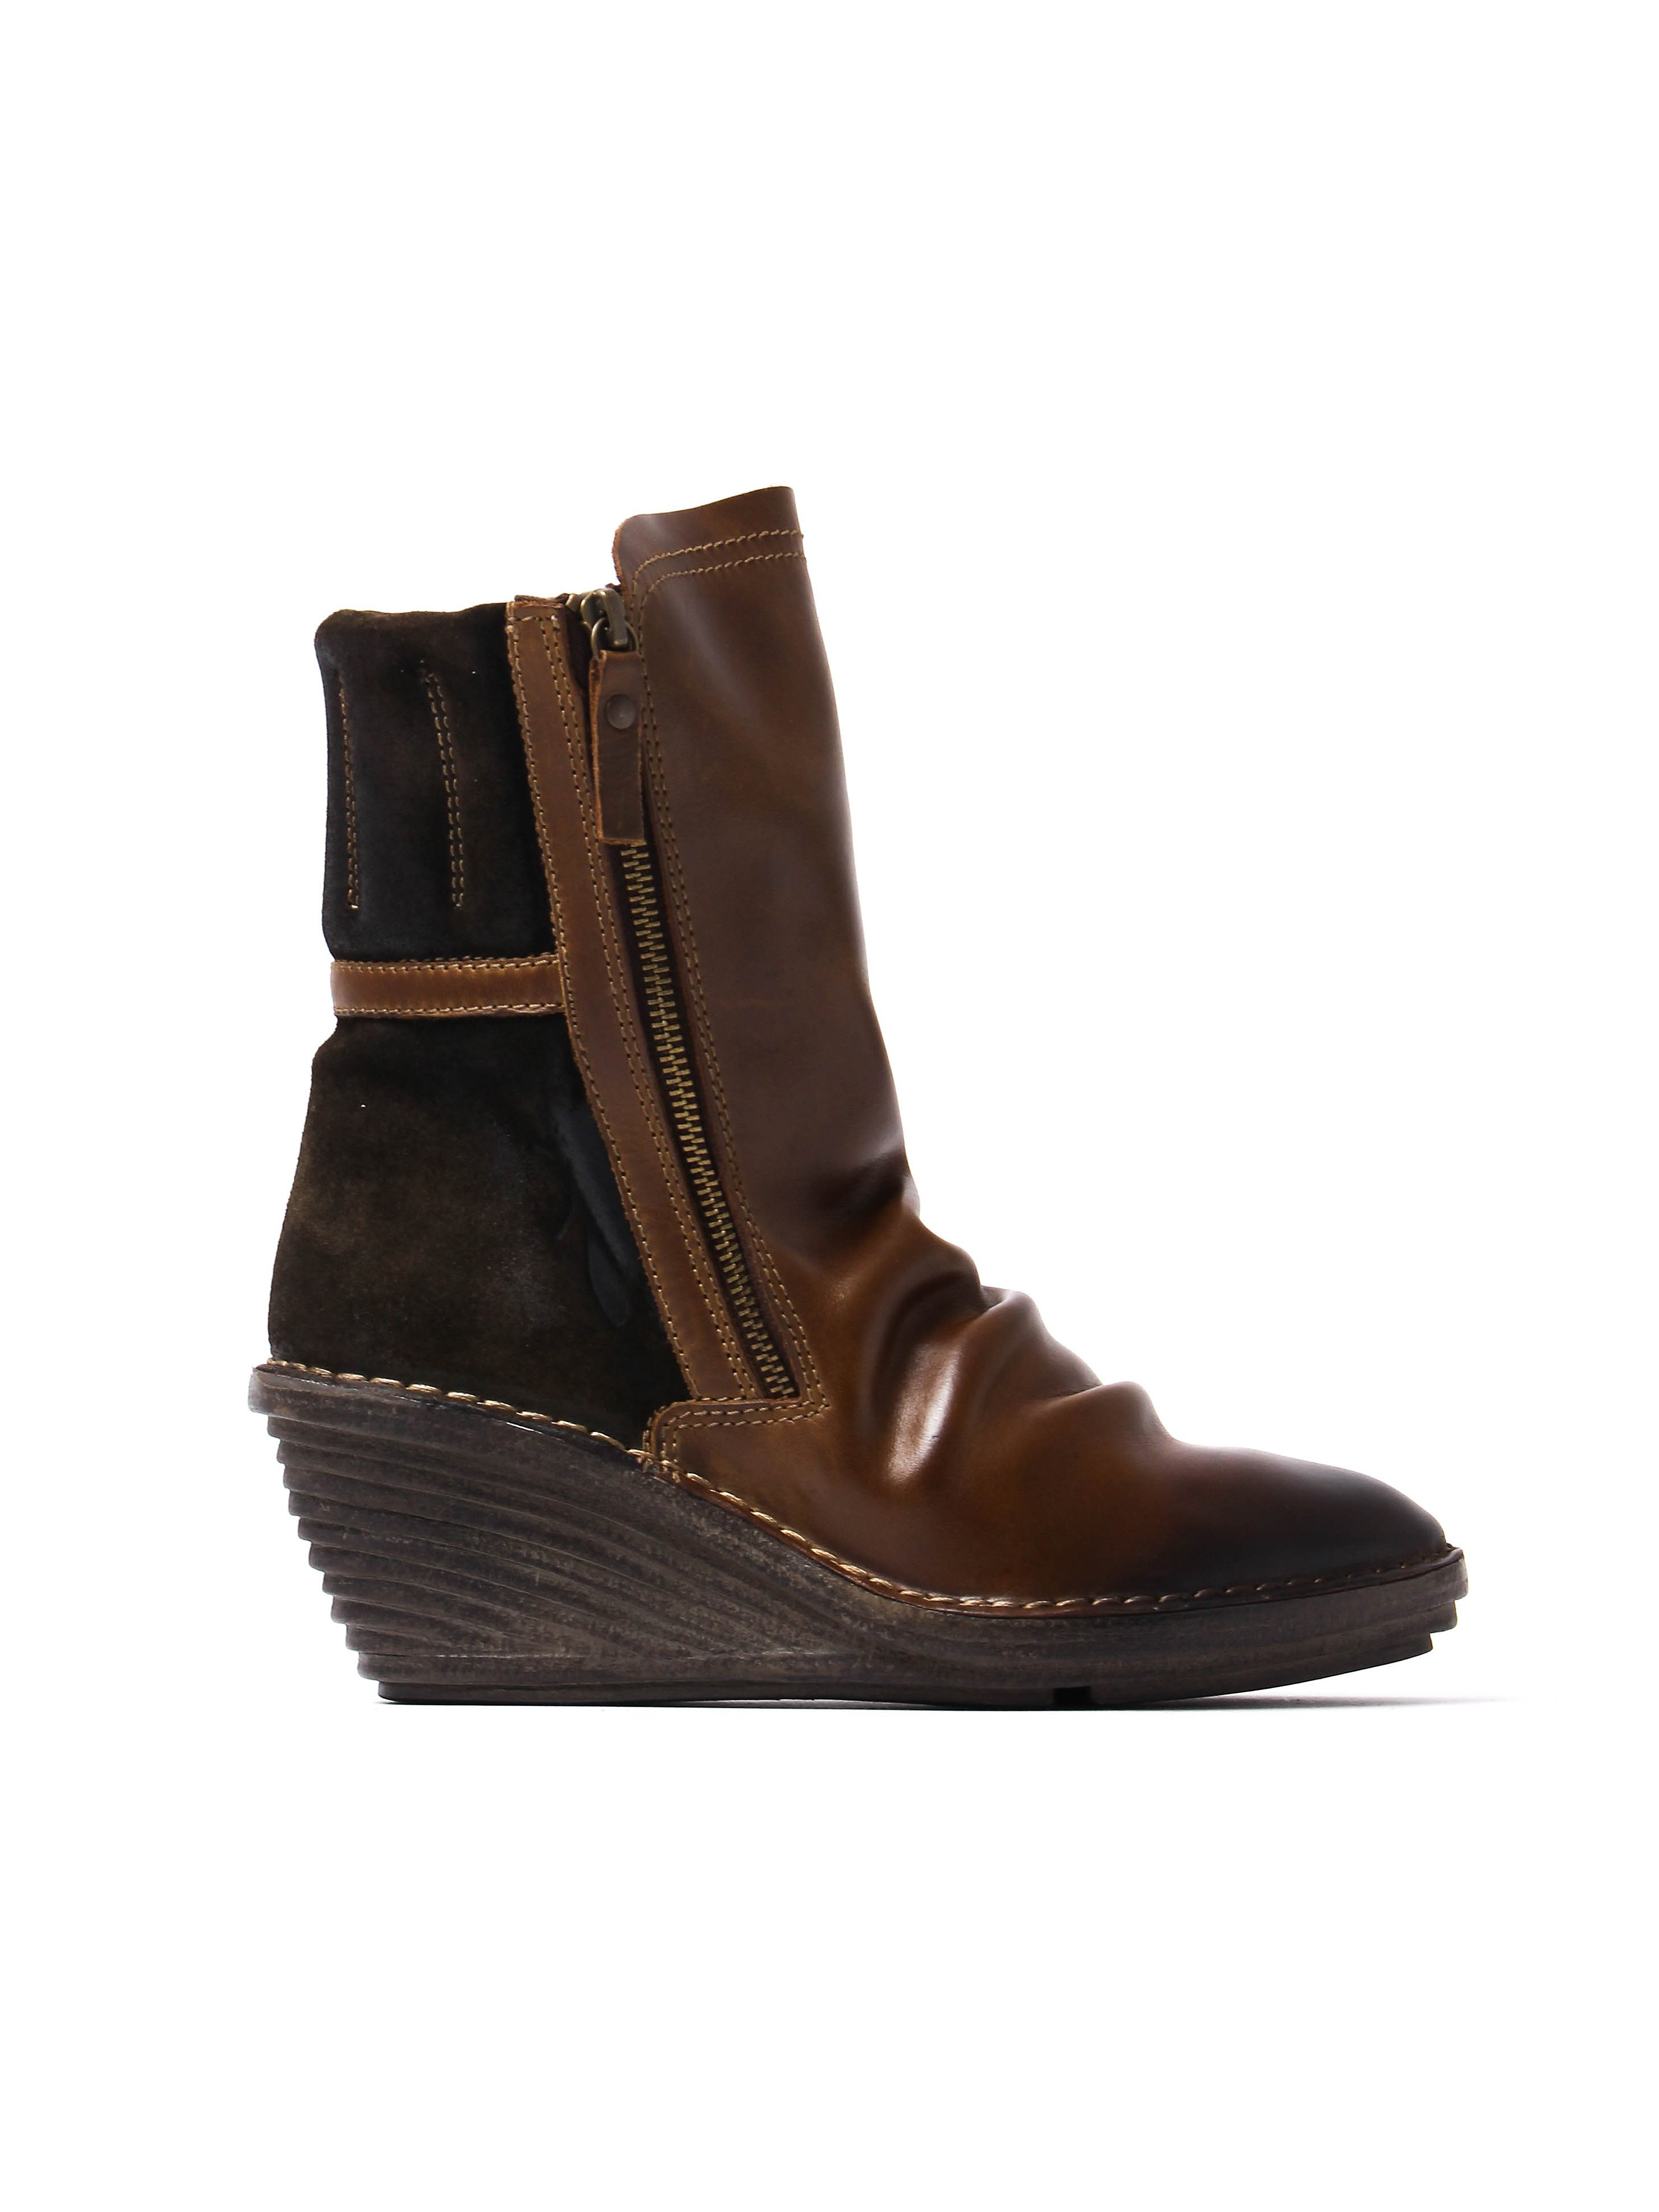 Fly London Women's Simi Slouch Boots - Sludge Leather